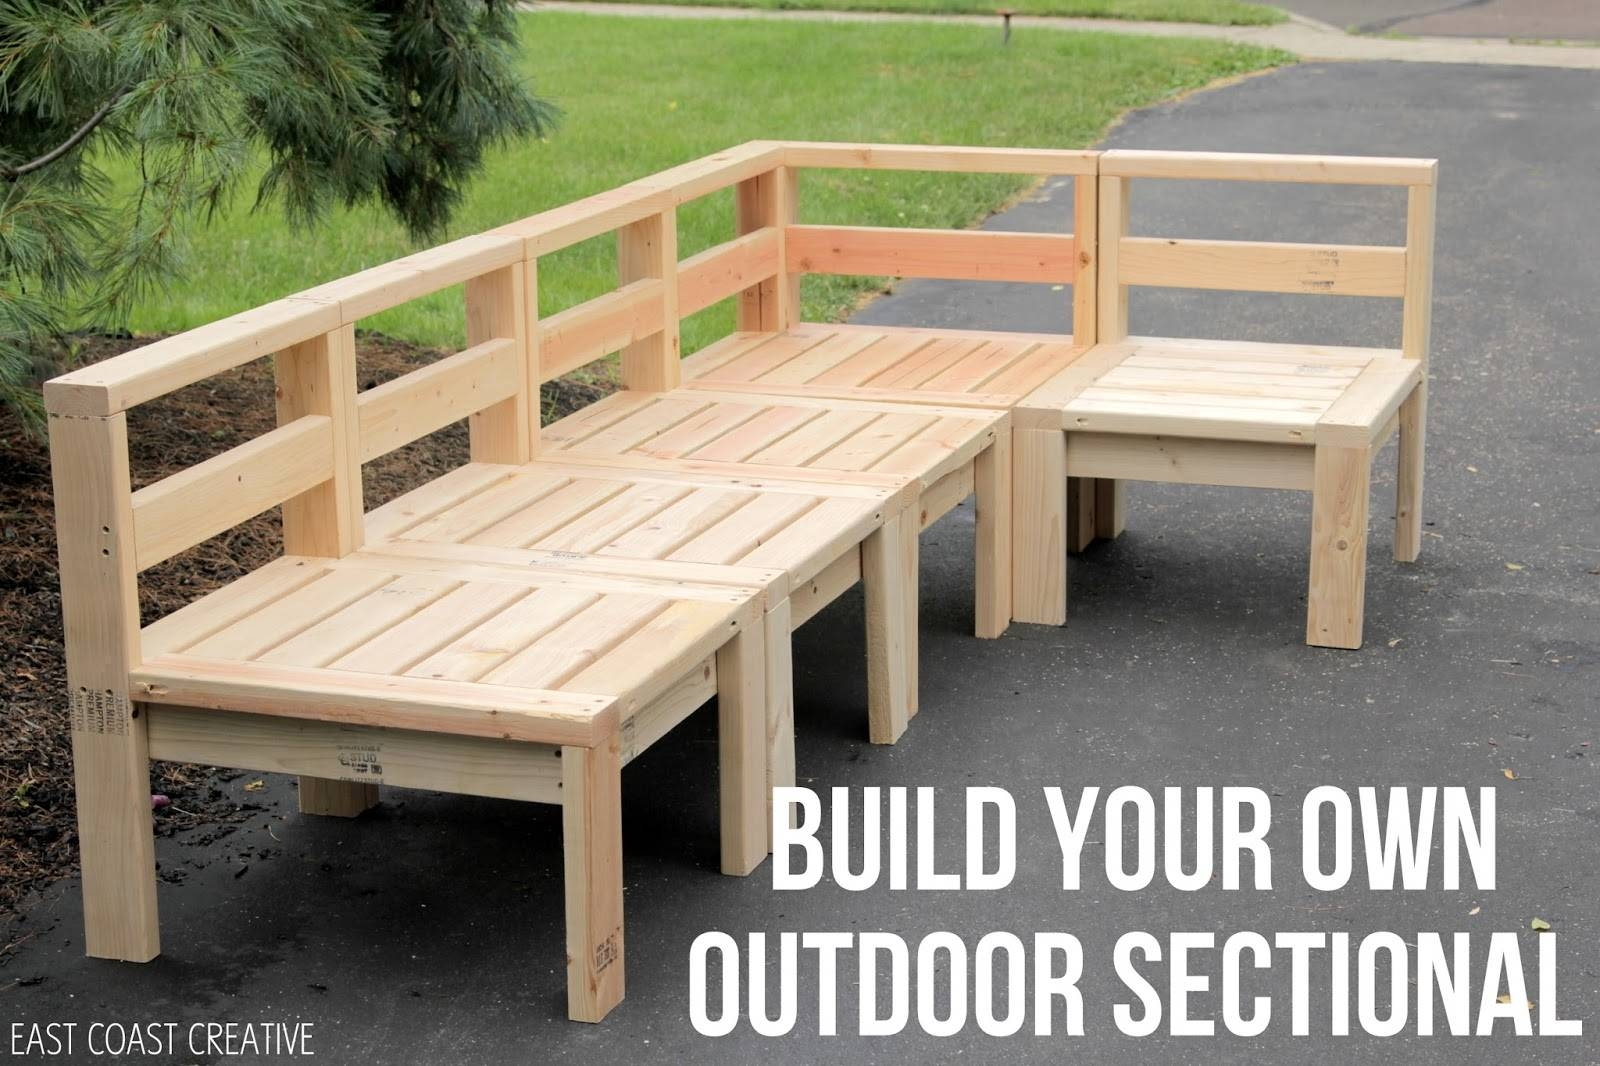 How To Build An Outdoor Sectional {Knock It Off} - East Coast with Diy Sectional Sofa Frame Plans (Image 14 of 30)